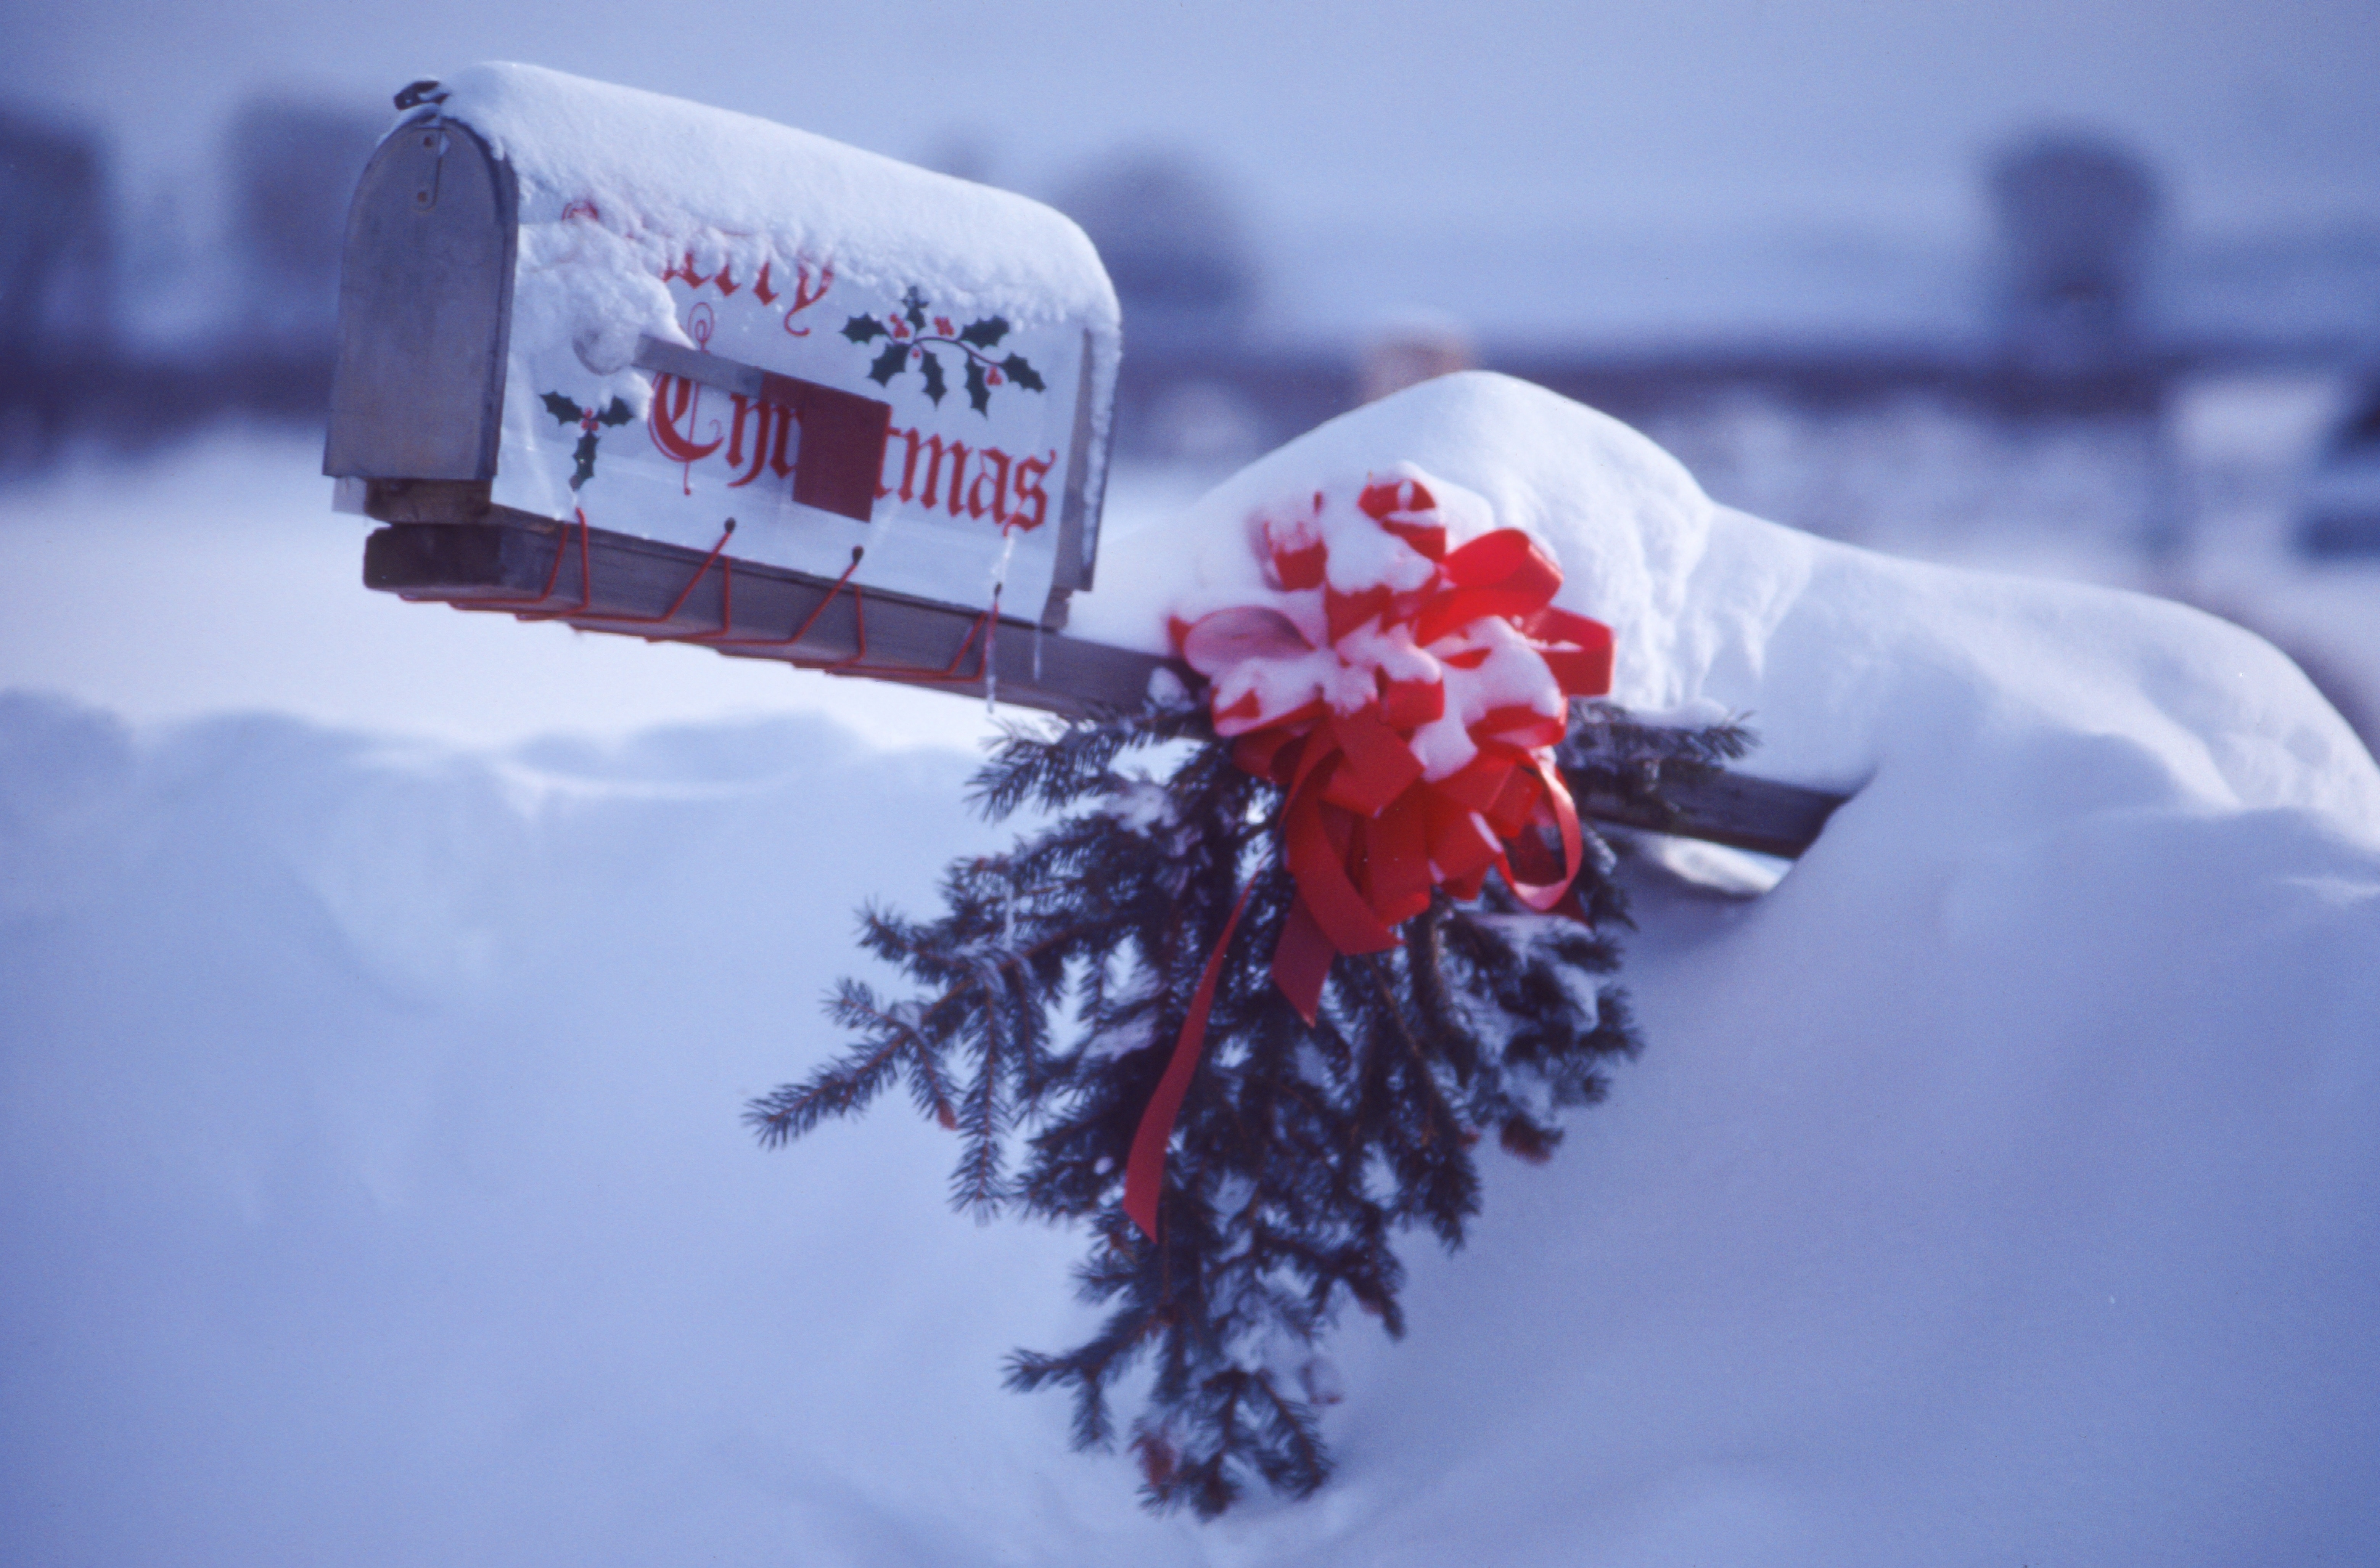 Altitude Media free domestic shipping mailbox covered in snow that says merry christmas